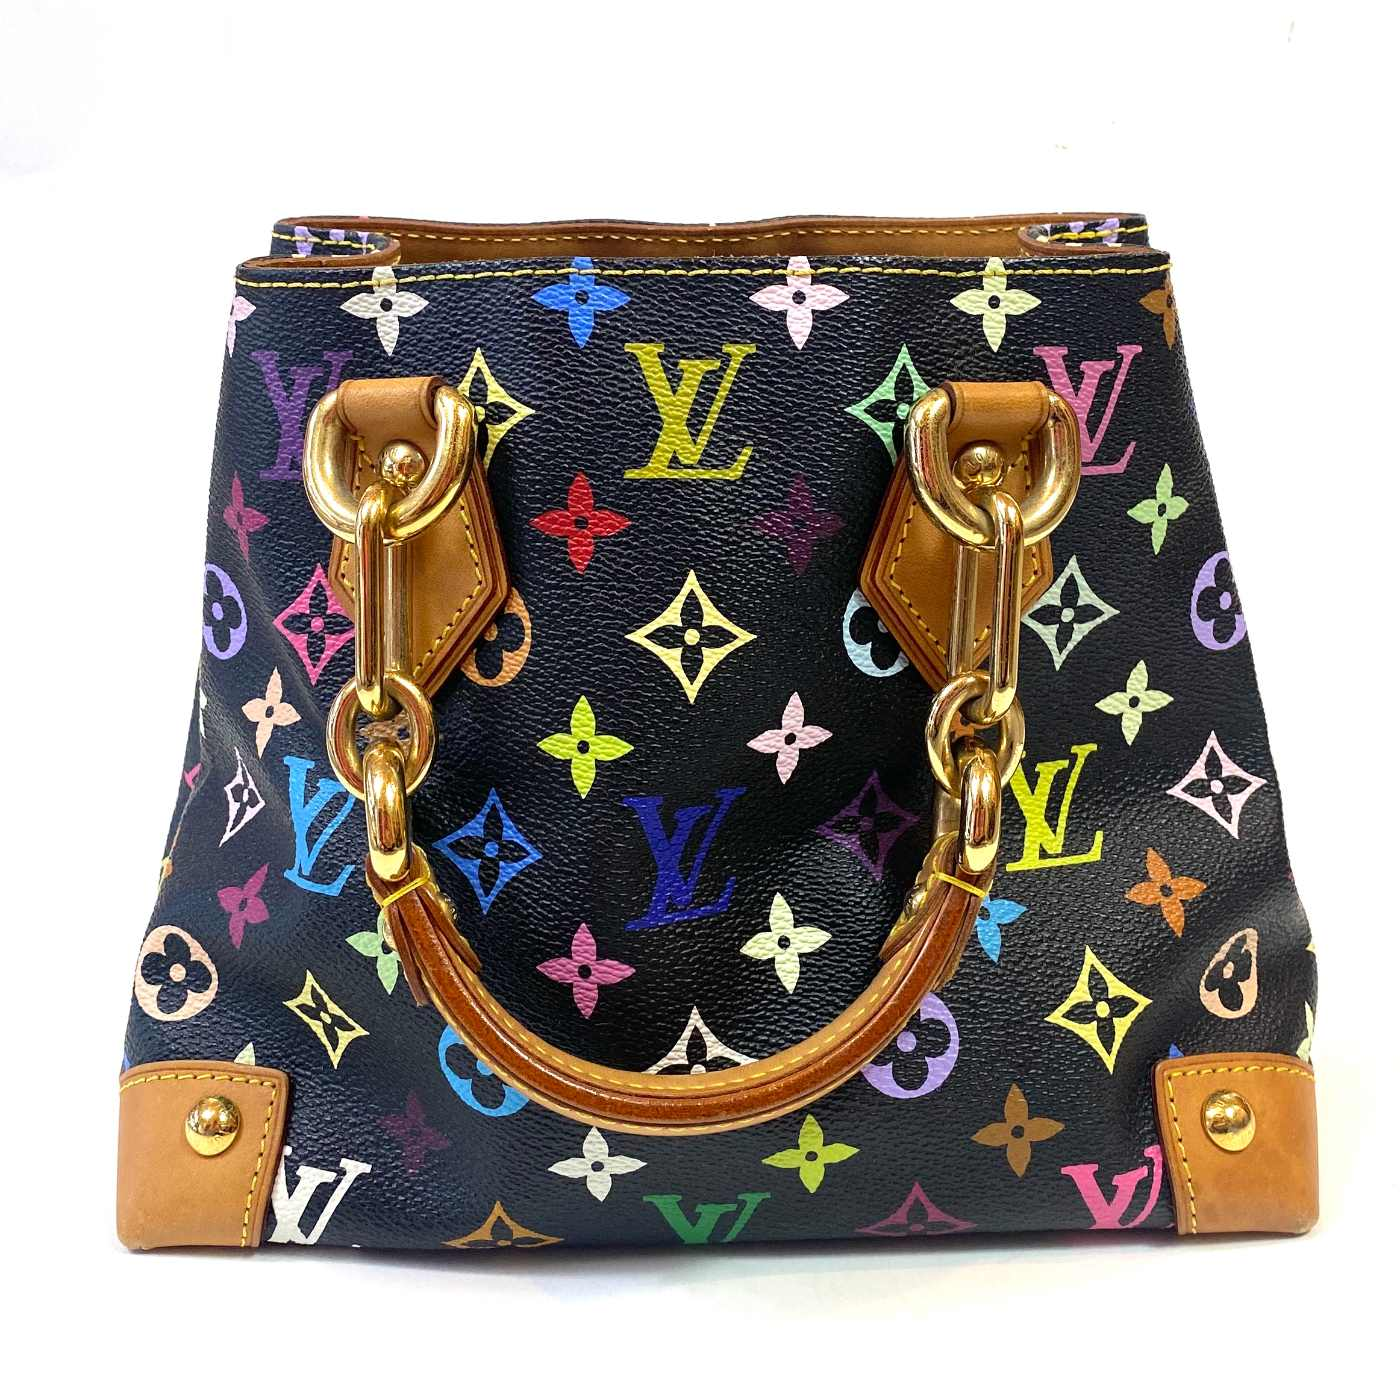 Bolsa Louis Vuitton Audra Black Multicolore